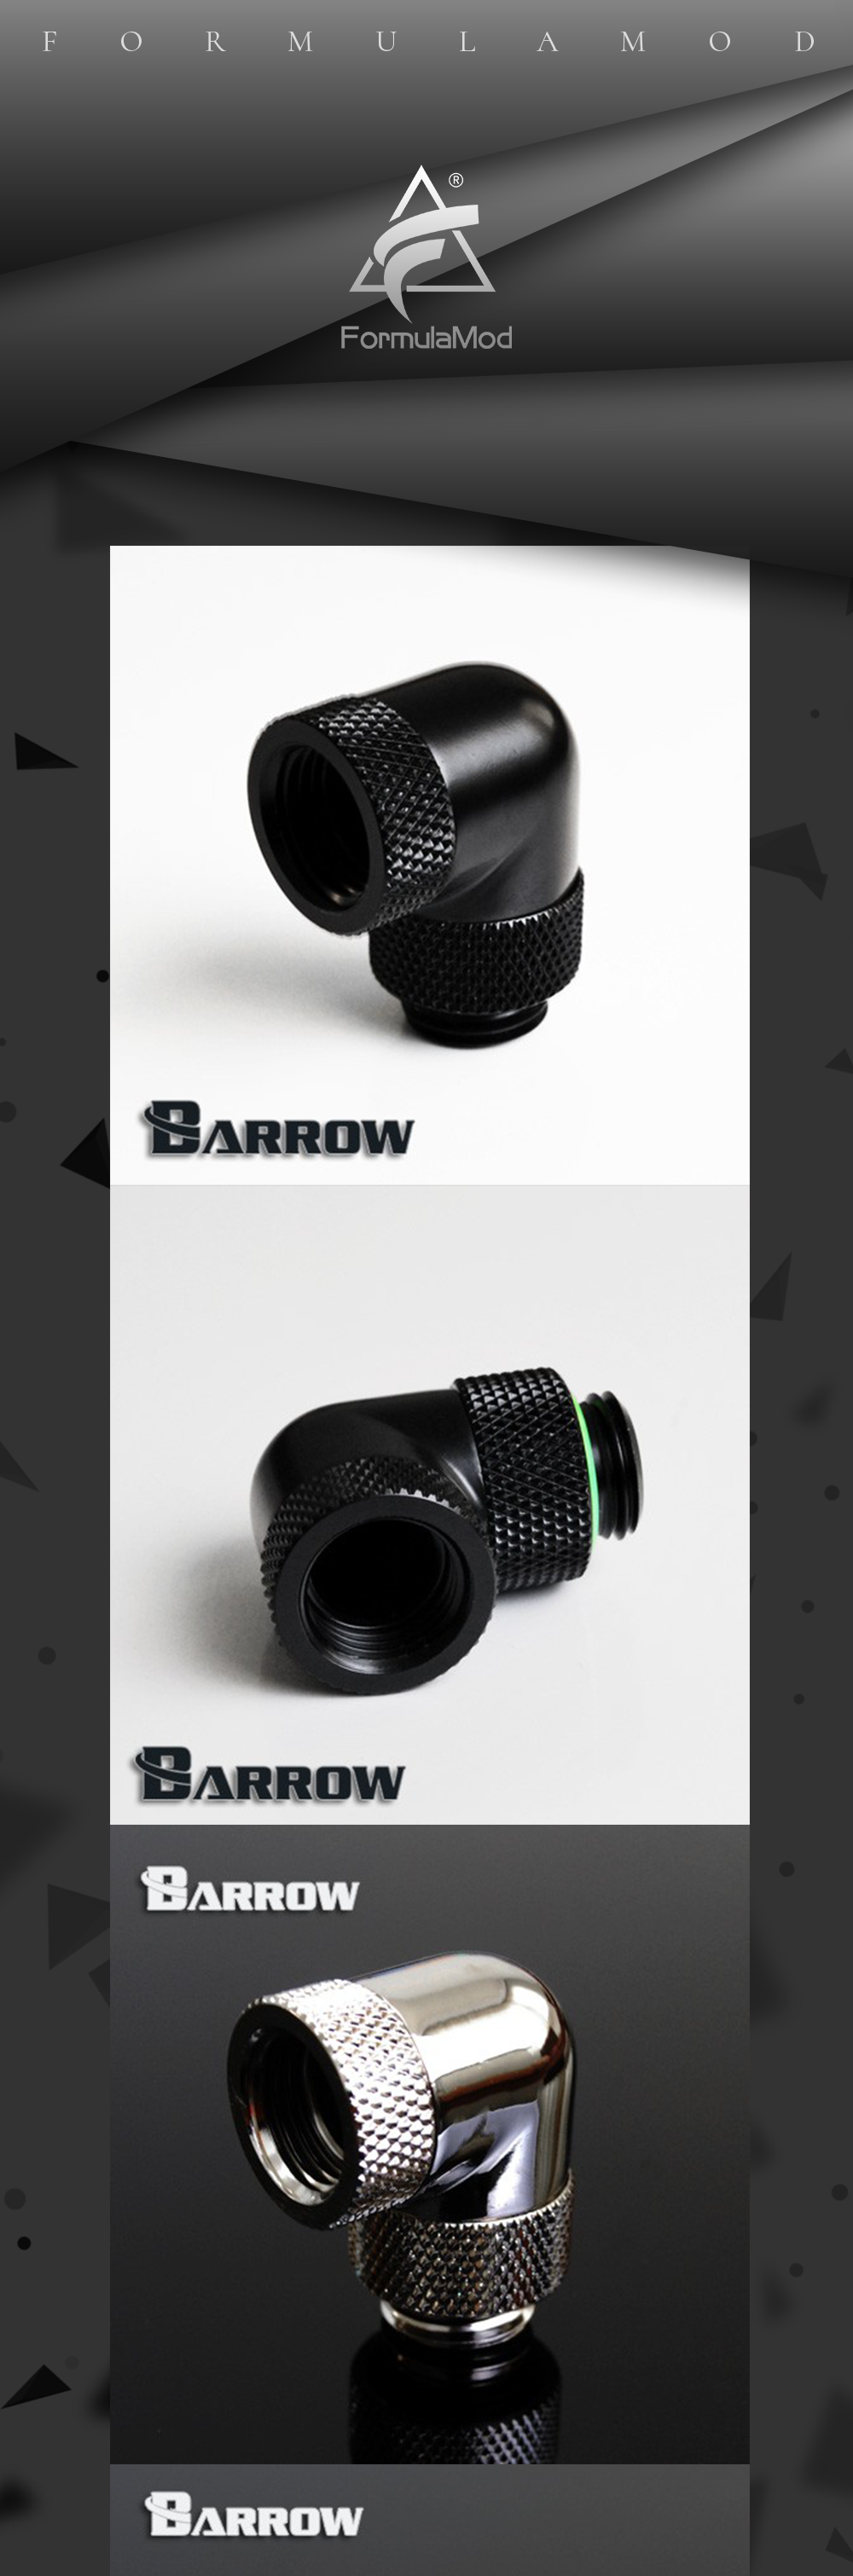 Barrow Black Silver G1/4''thread 90 degree two Rotary Fitting Adapter Rotating 90 degrees water cooling Adaptors TWT90S-V2